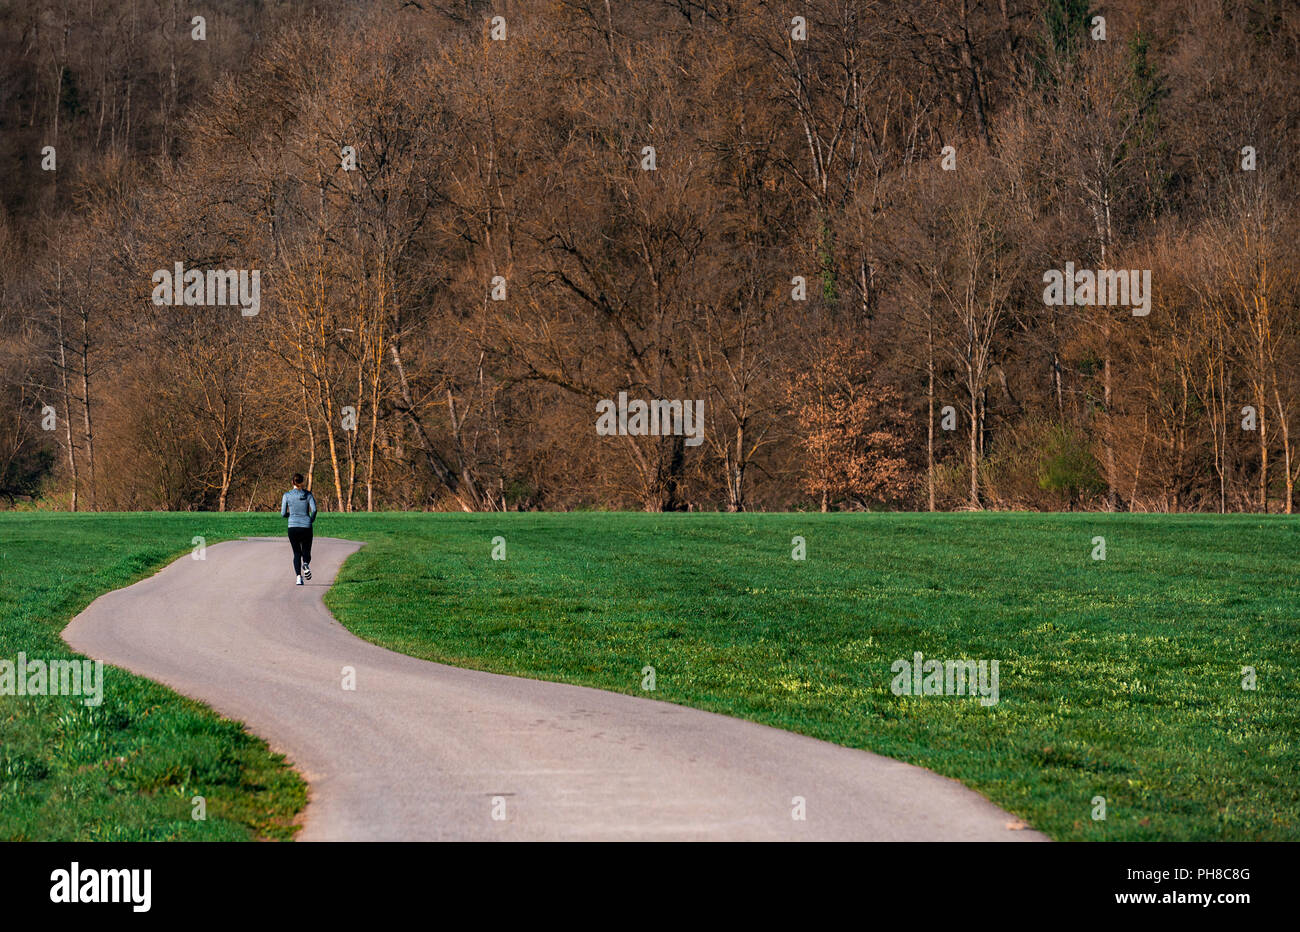 Autumn forest, a green meadow and an alley perfect for running or walking outdoors, in nature, in the fresh air, near Schwabisch Hall town, Germany. - Stock Image